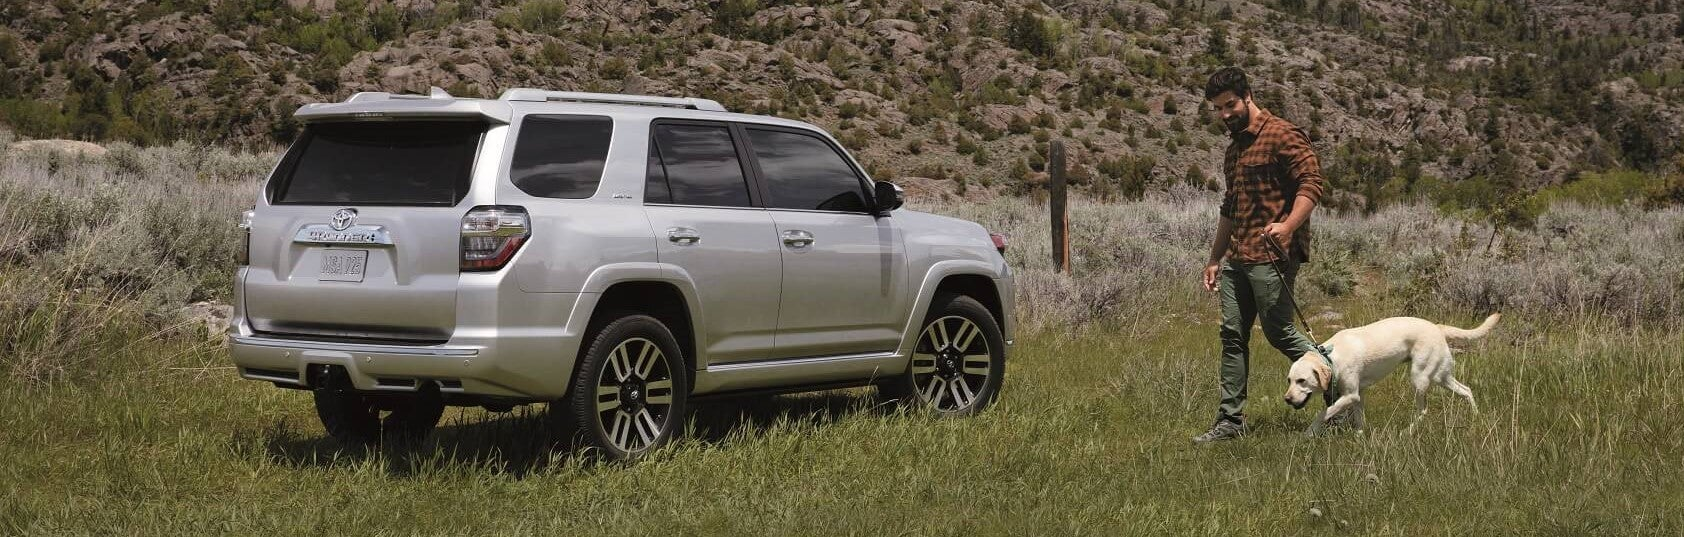 2020 4Runner Limited 4x4_